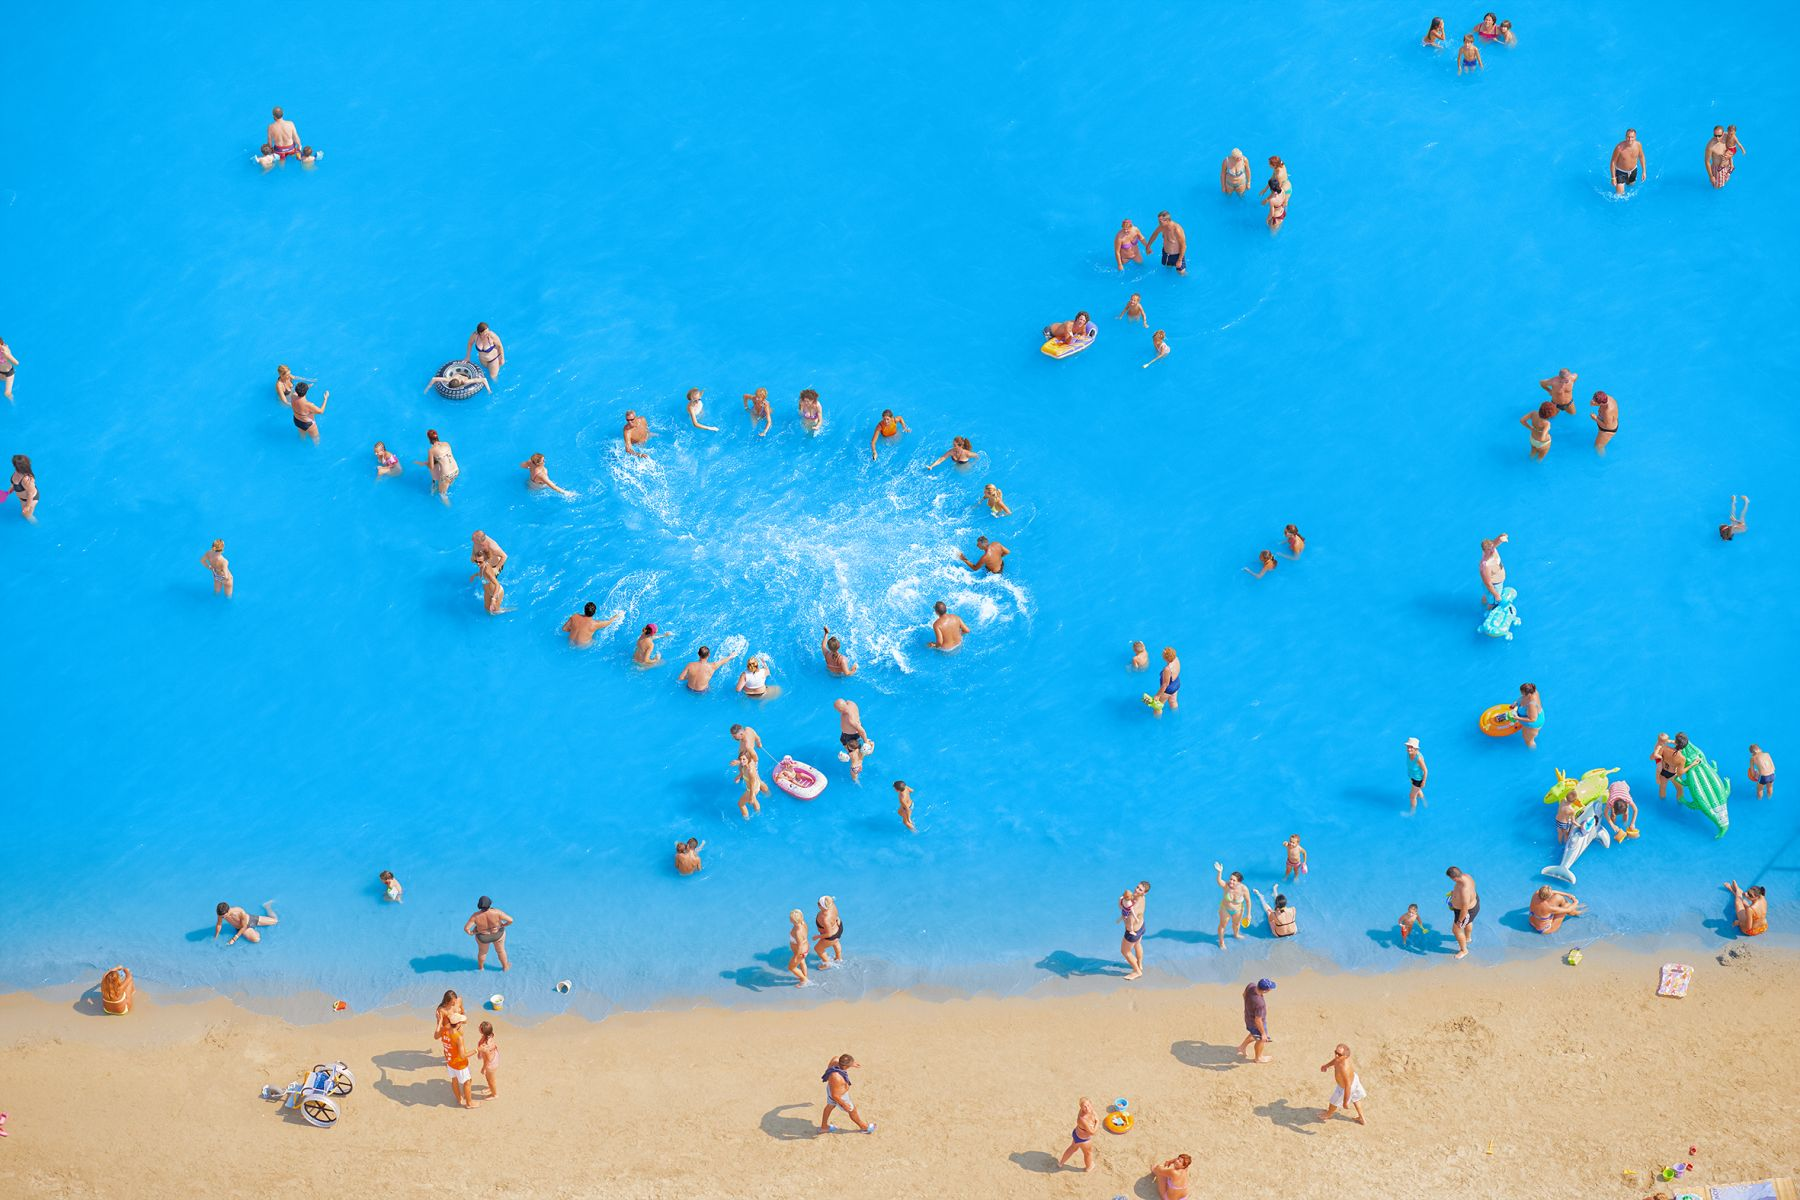 Adriatic Sea (Staged) Dancing People #9, 2015, 65 x 96 inch or 44.5 x 65.5 inch archival pigment print